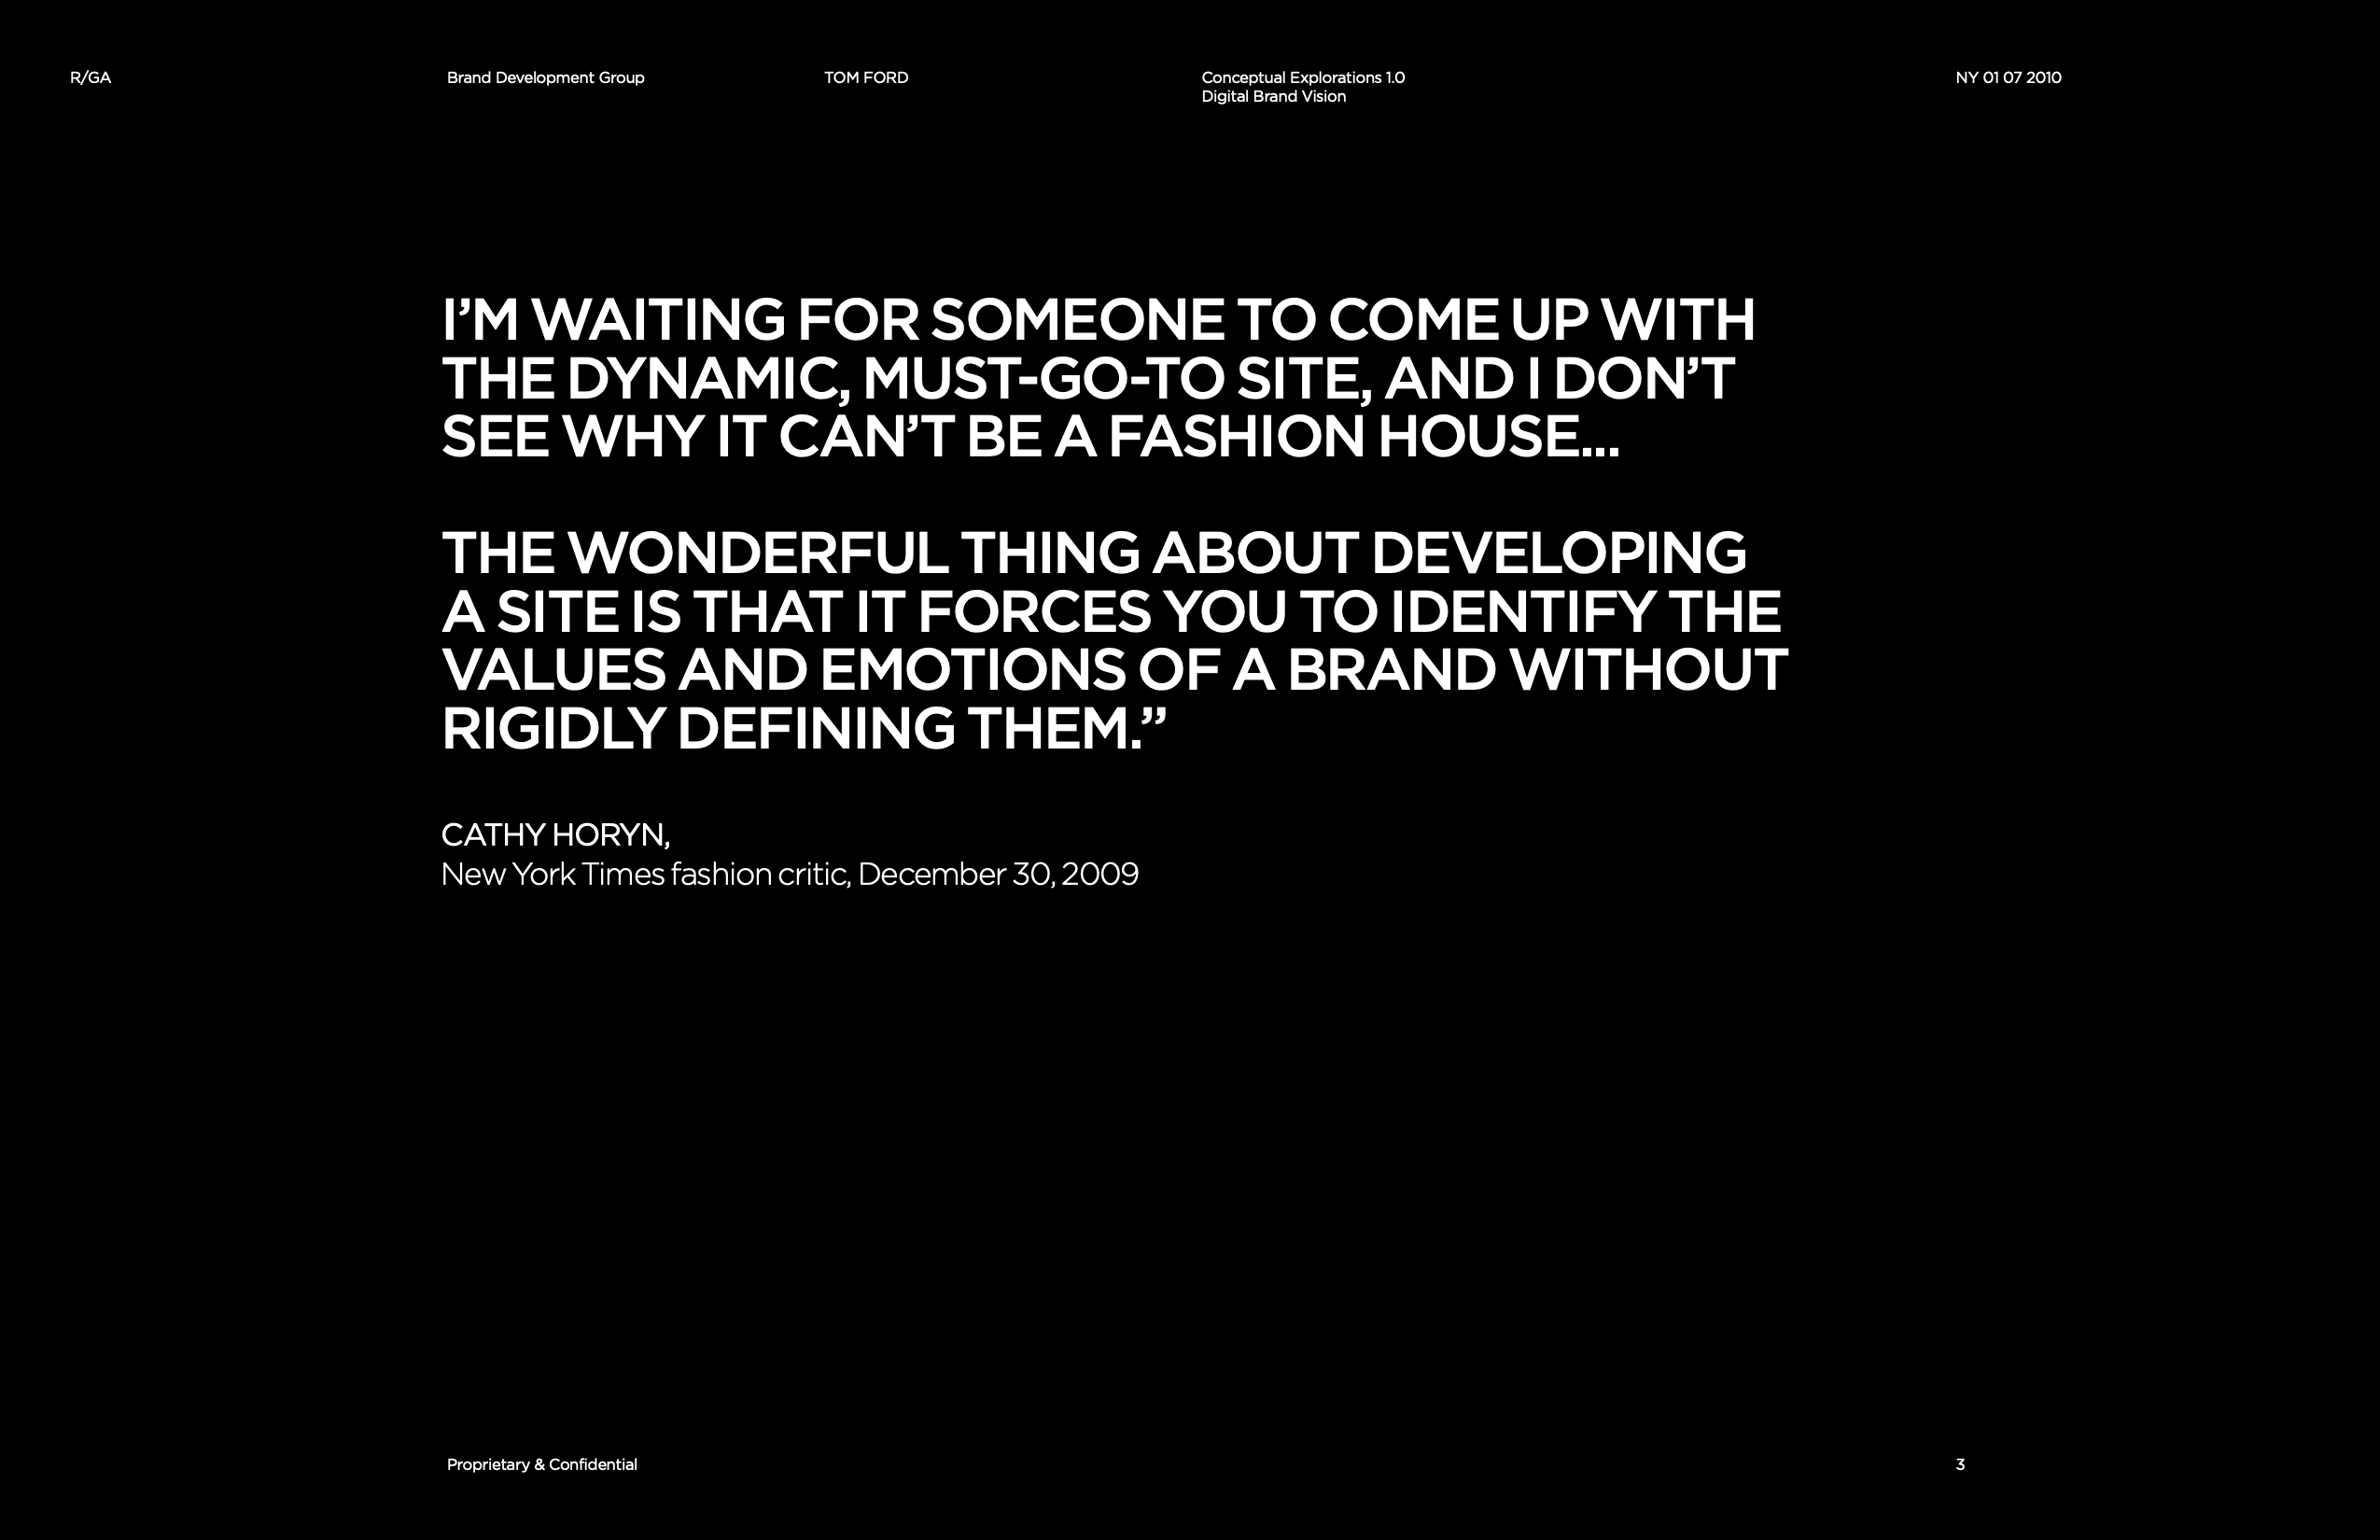 Tom Ford Brand Interface / Disclosure